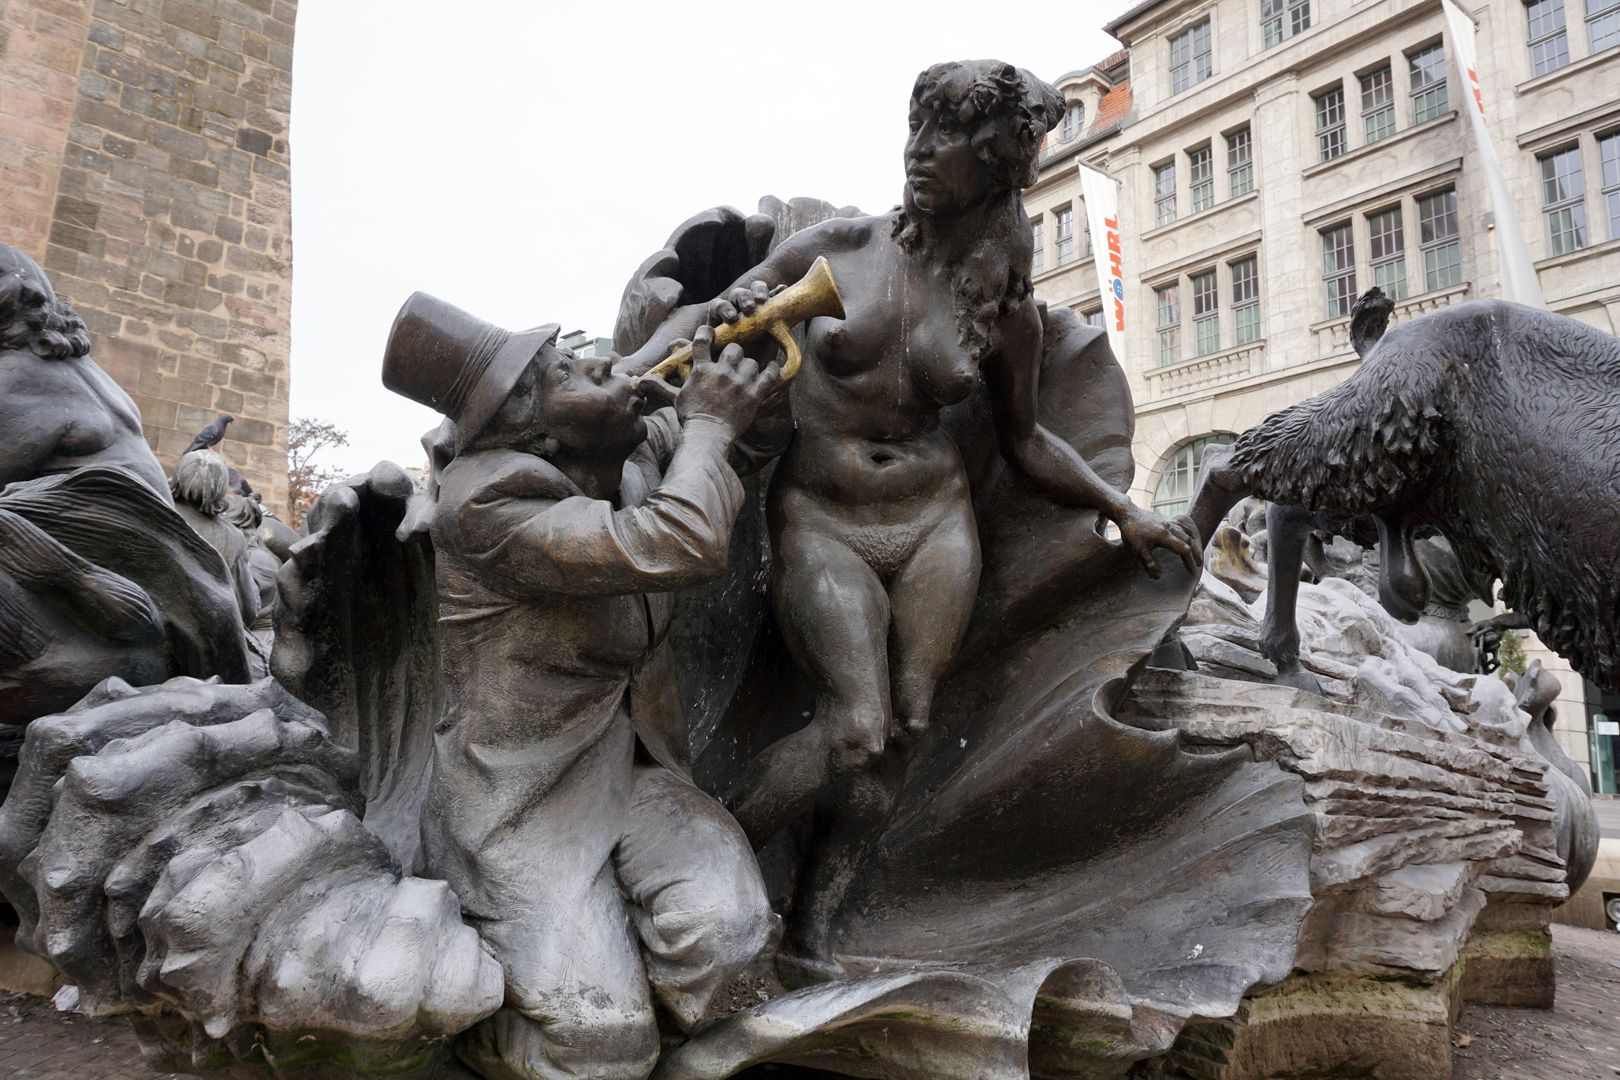 """Marriage carousel/ Hans Sachs Fountain """"Venus clam""""/""""He sings of naked beauty with his instrument, the shell becomes a fairground stall"""" (J.W.)"""